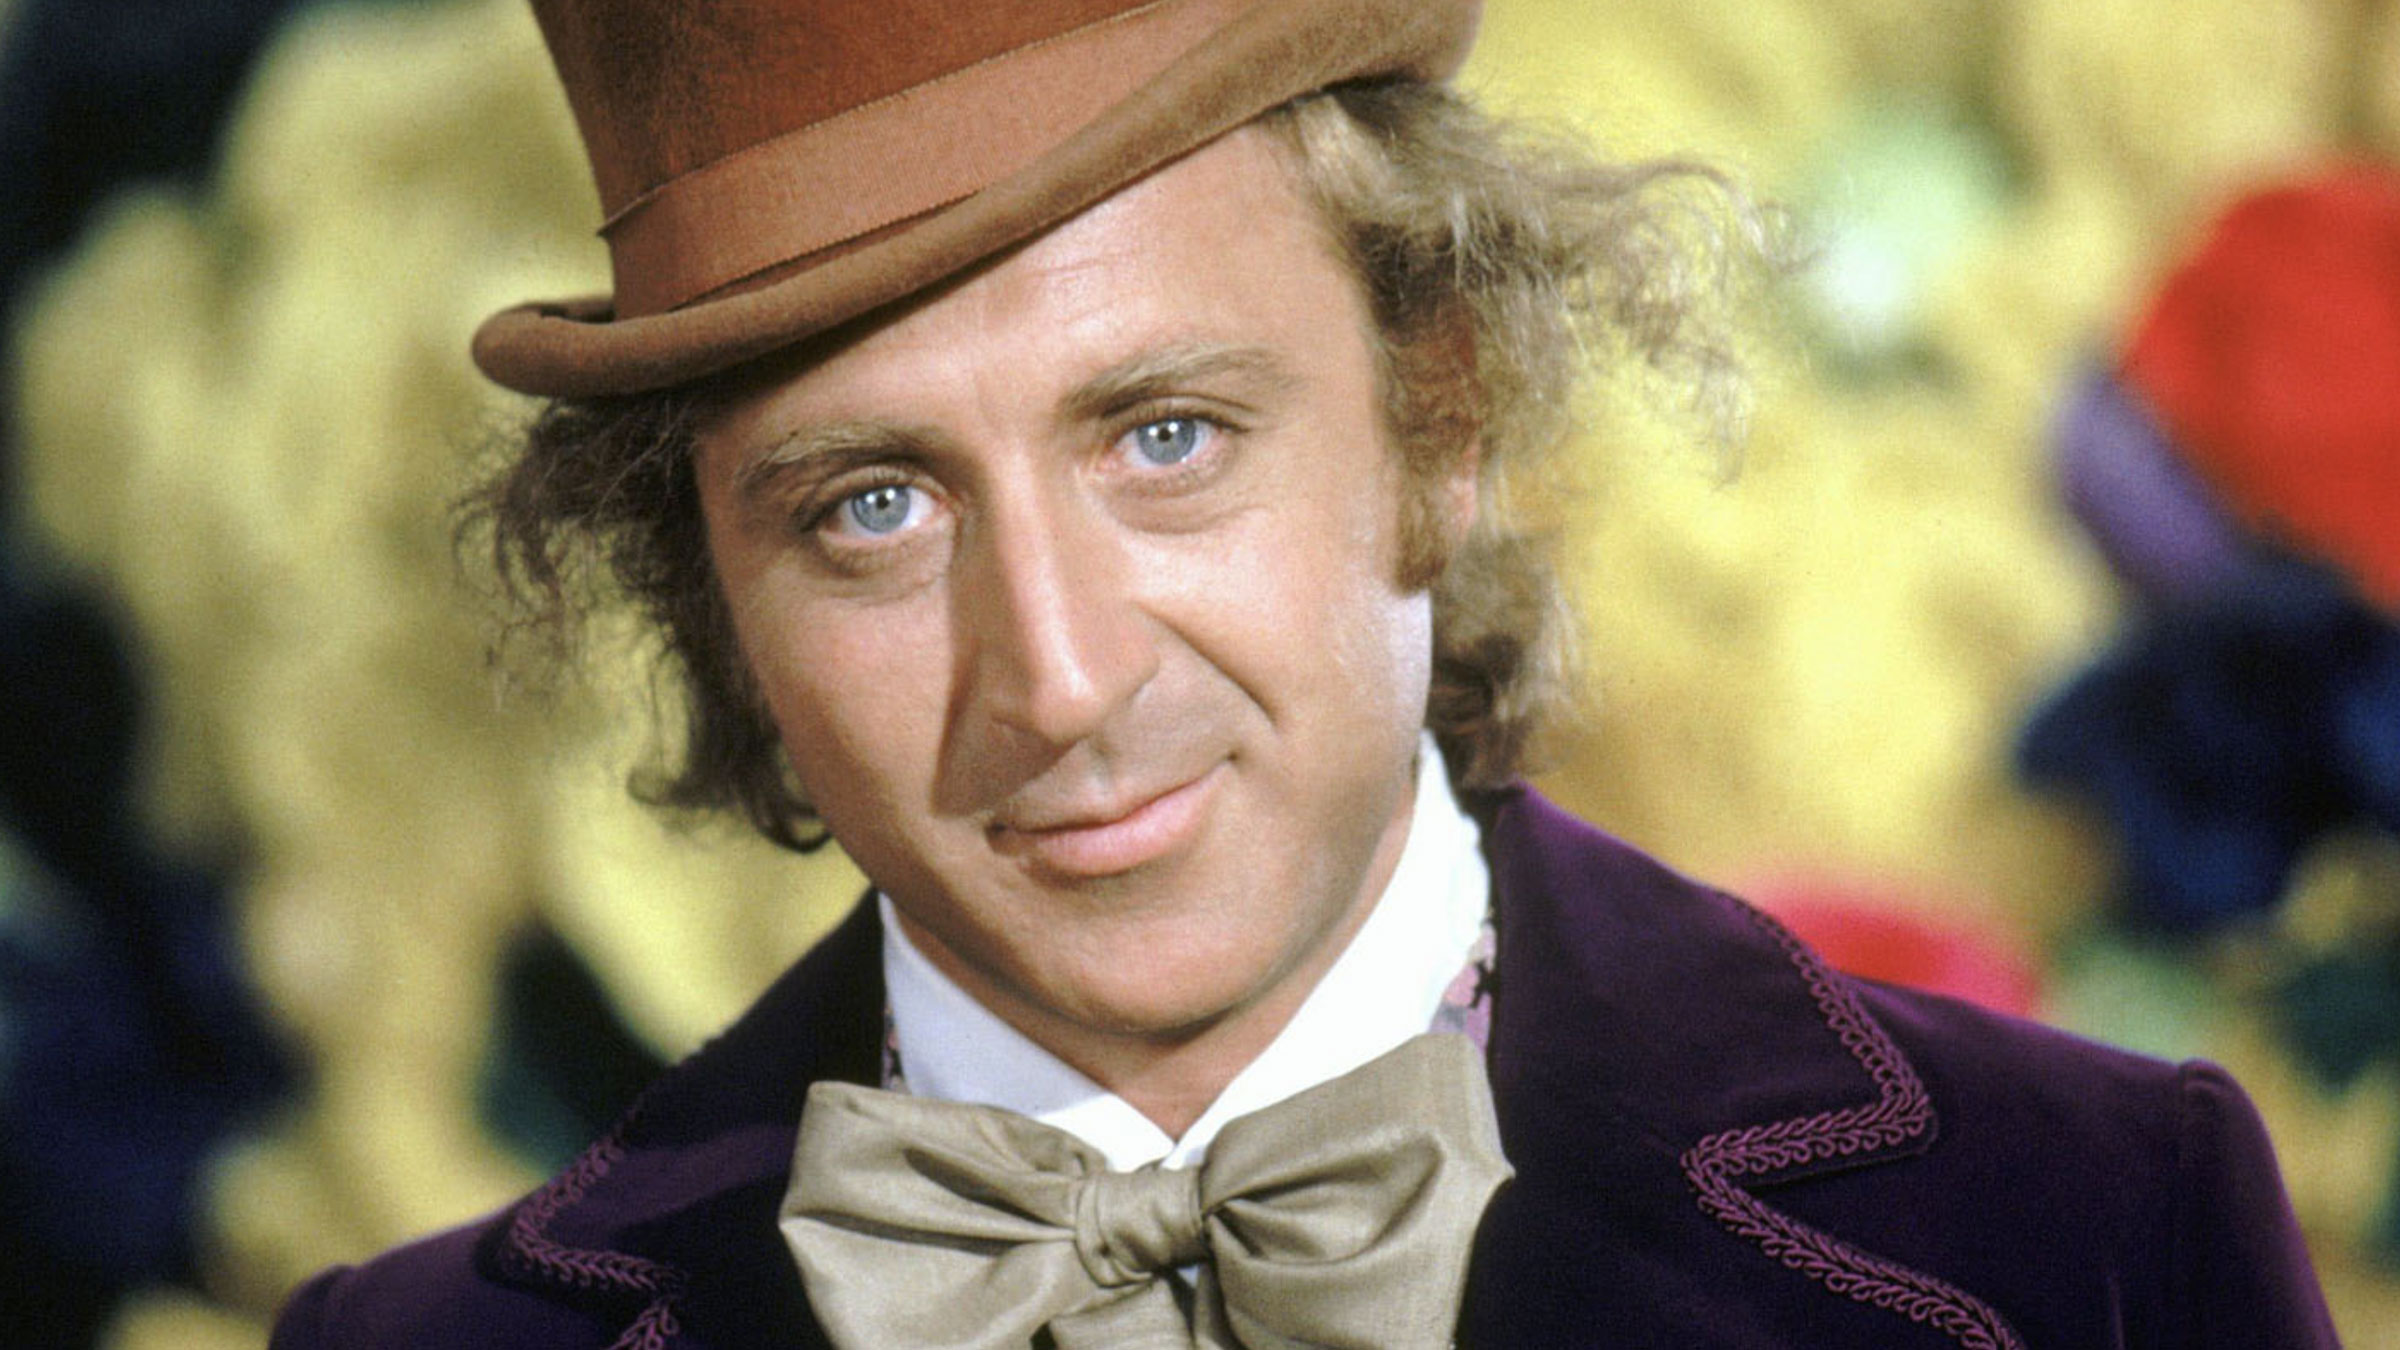 Willy Wonka and the Chocolate Factory (Ultra HD 4K Blu-ray)